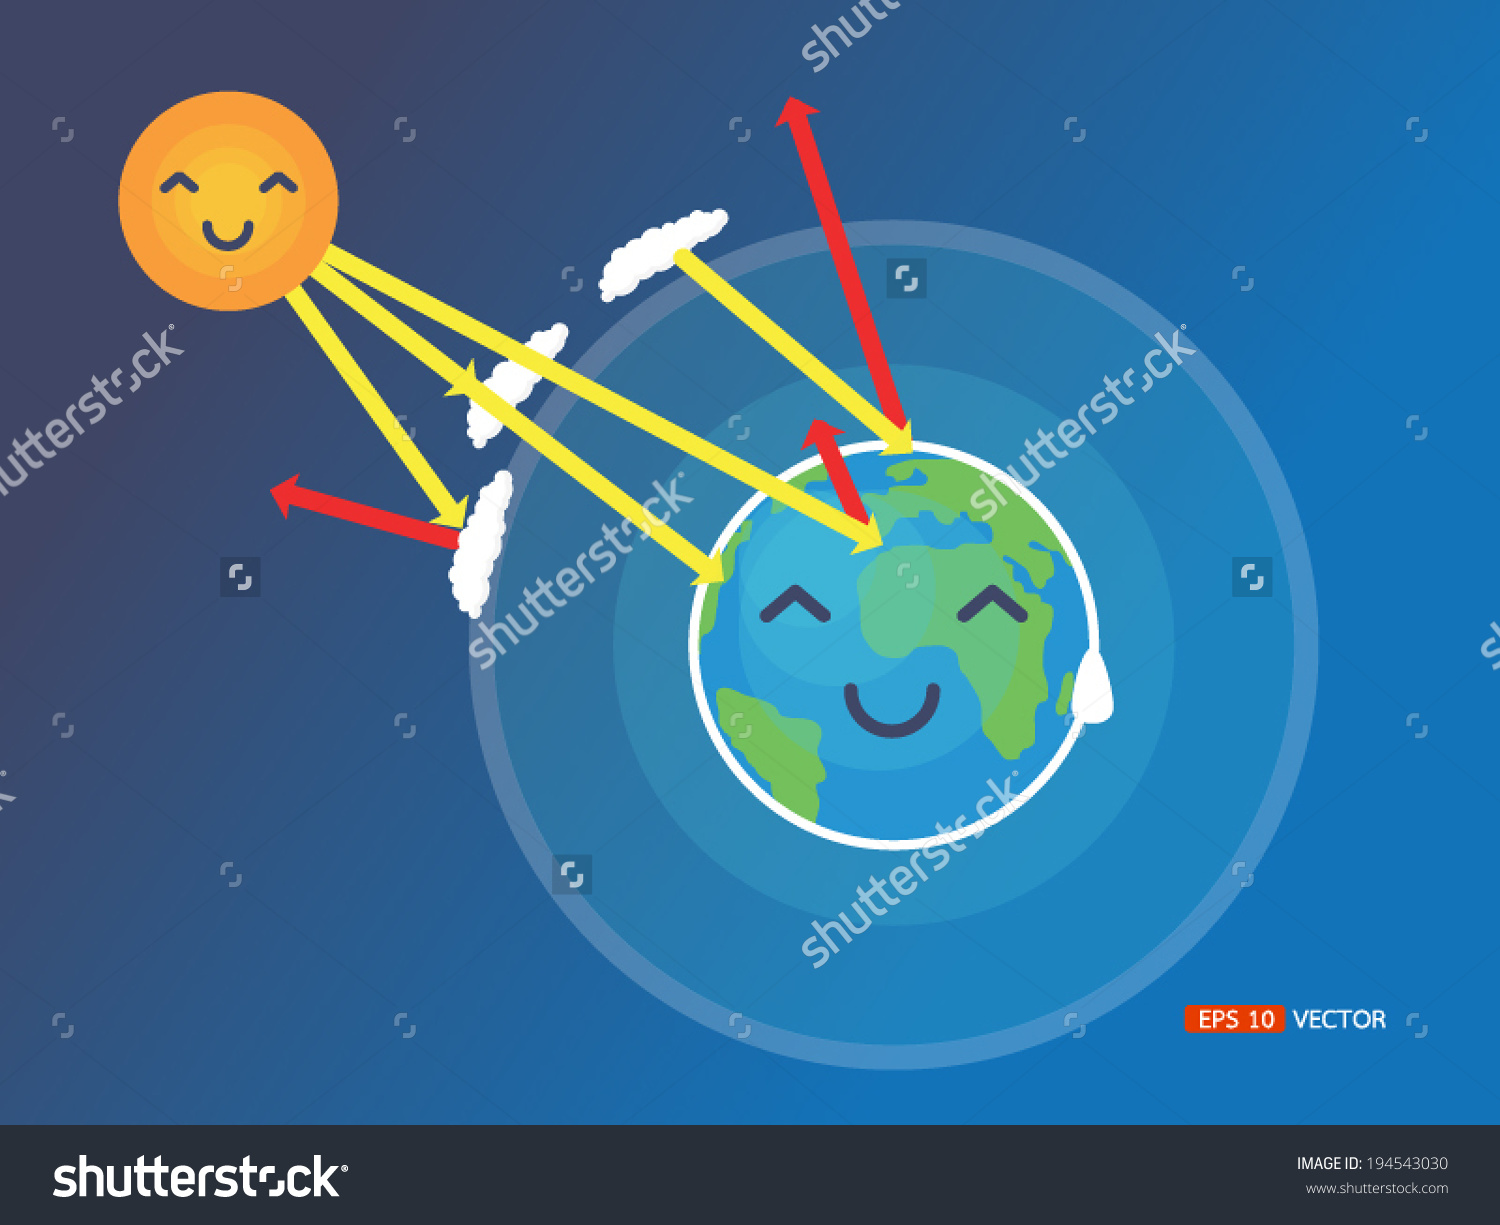 earth atmosphere greenhouse clipart panda free clipart how to make vector sun rays in photoshop vector sun ray brush free download